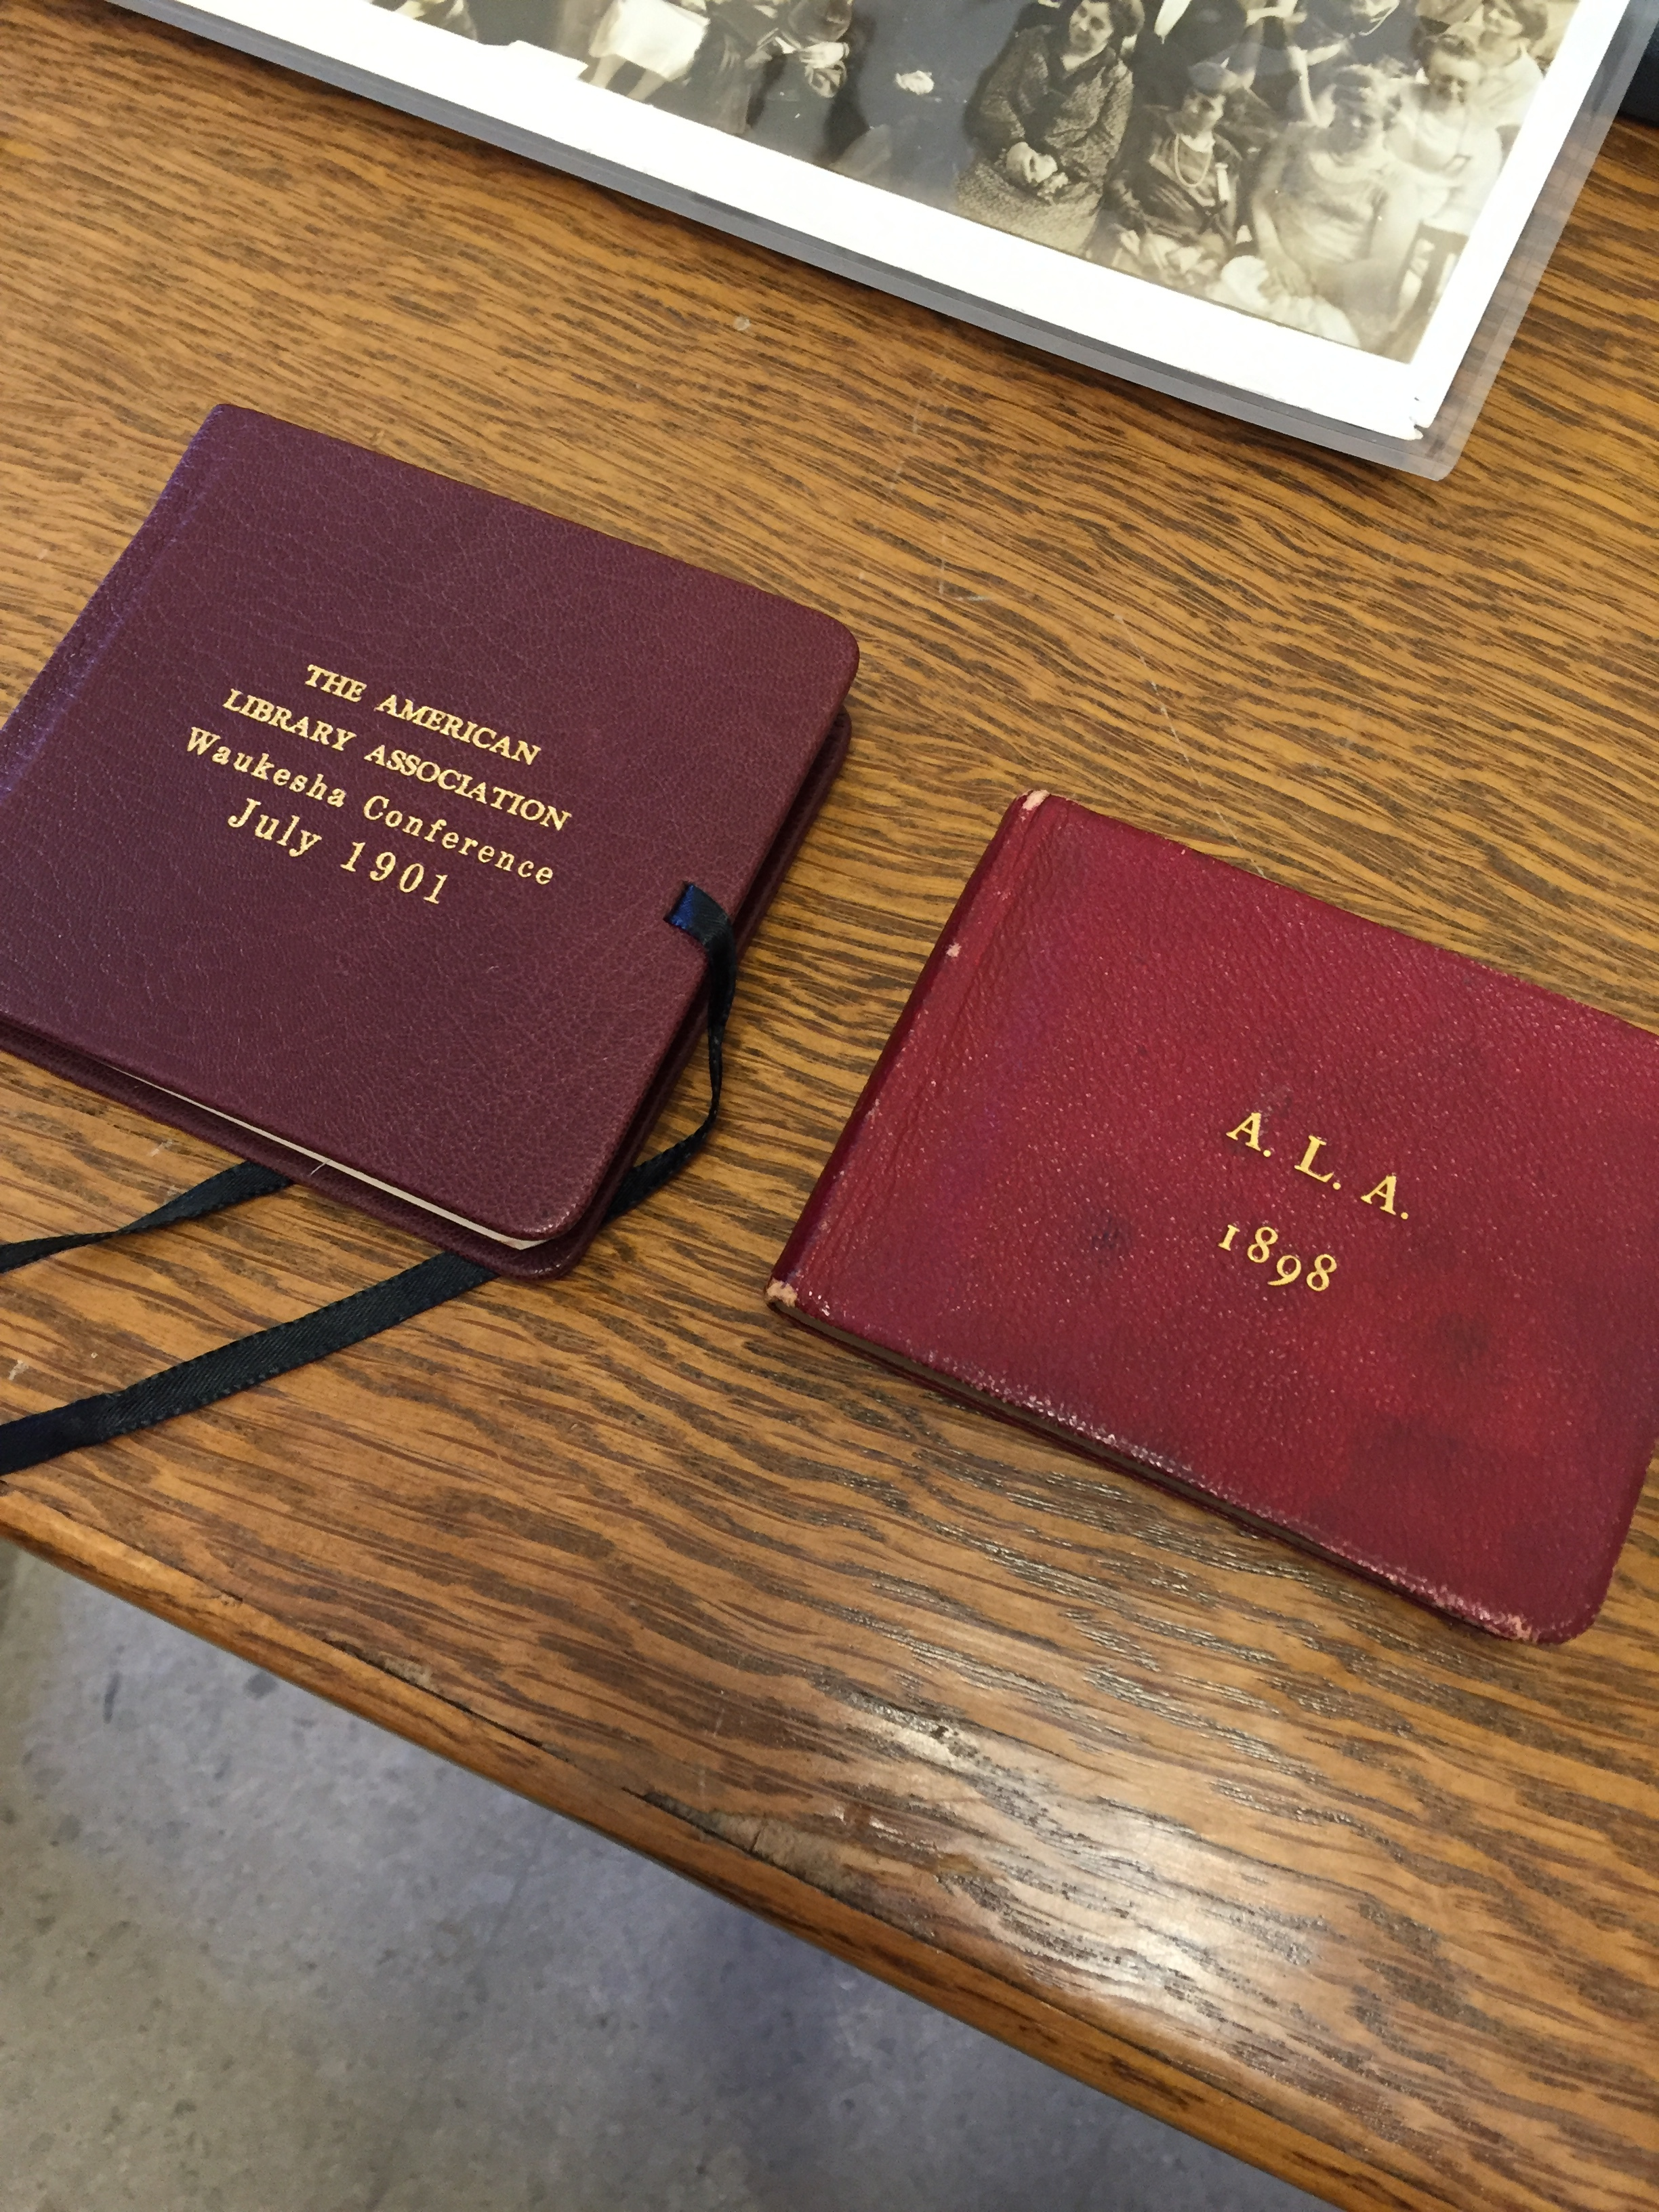 ALA Archives findings